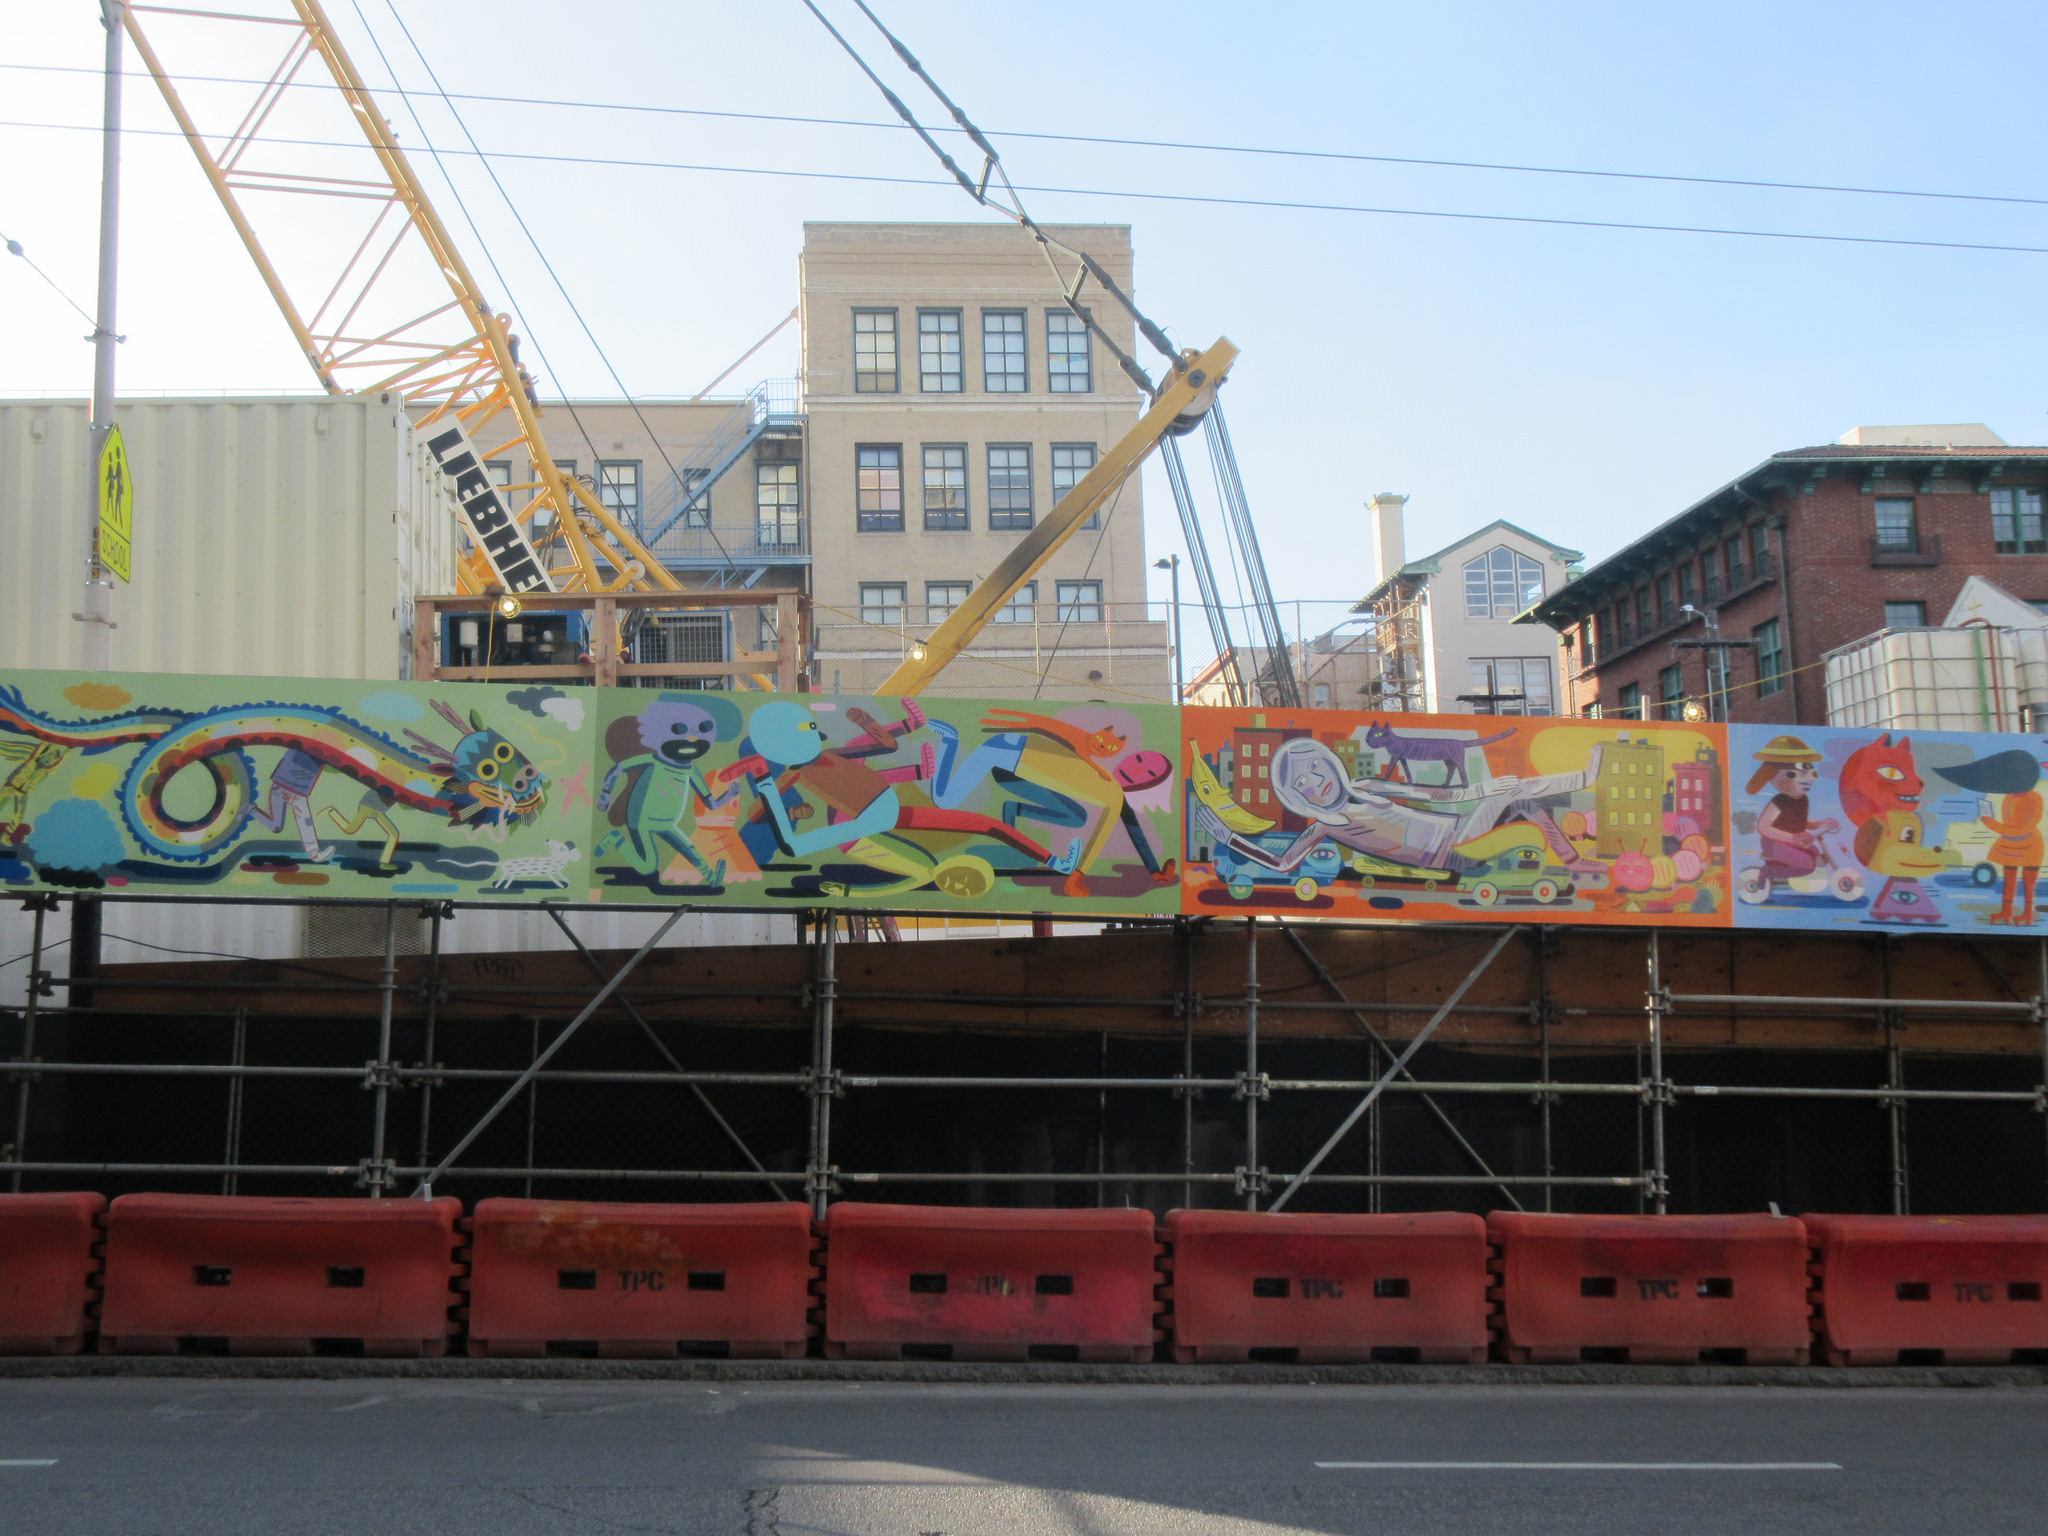 A mural image of dozens of bizarre cartoon characters above a construction barricade on Stockton Street, with cranes and machinery behind it.